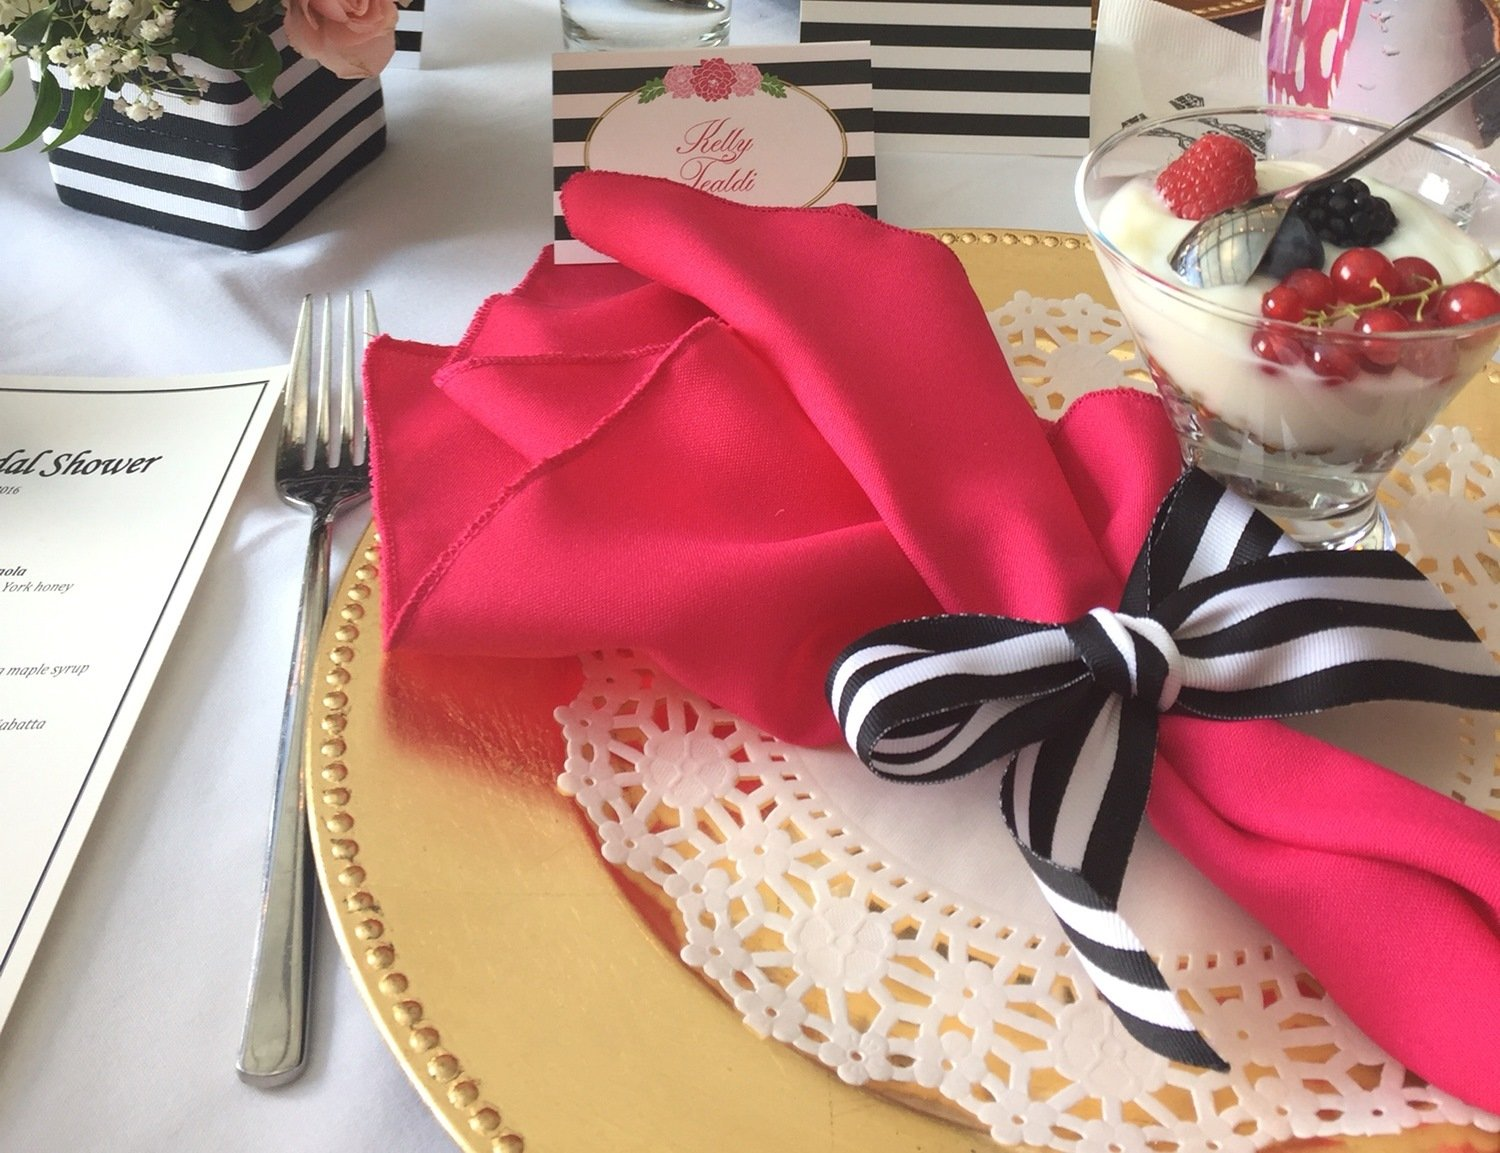 16 heiß Pink Gabardine Cloth Napkins für Dinner Party Birthday Dinner Bridal oder Baby Shower